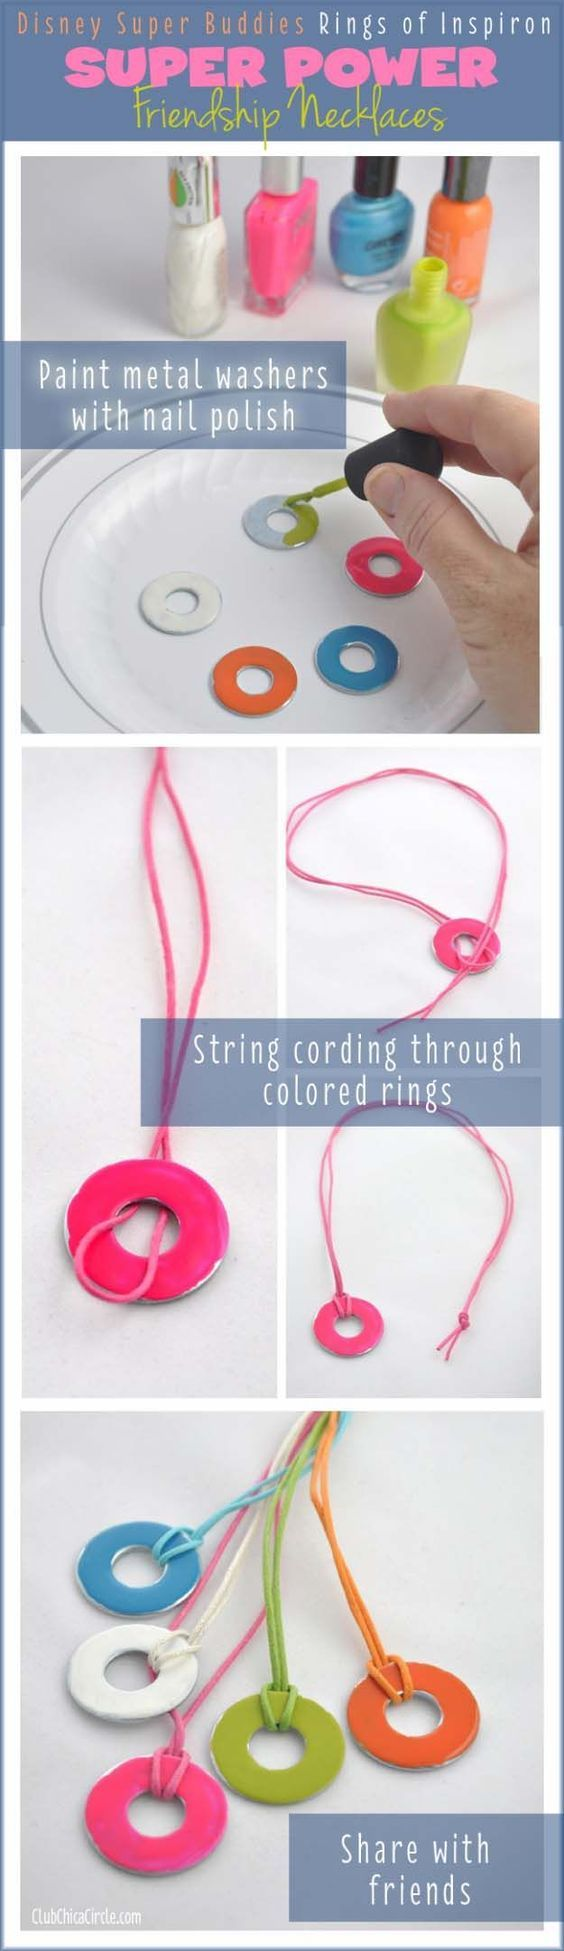 DIY Crafts Using Nail Polish - Fun, Cool, Easy and Cheap Craft Ideas for Girls, Teens, Tweens and Adults | Super Buddies Rings of Inspiron Super Power Friendship Necklaces